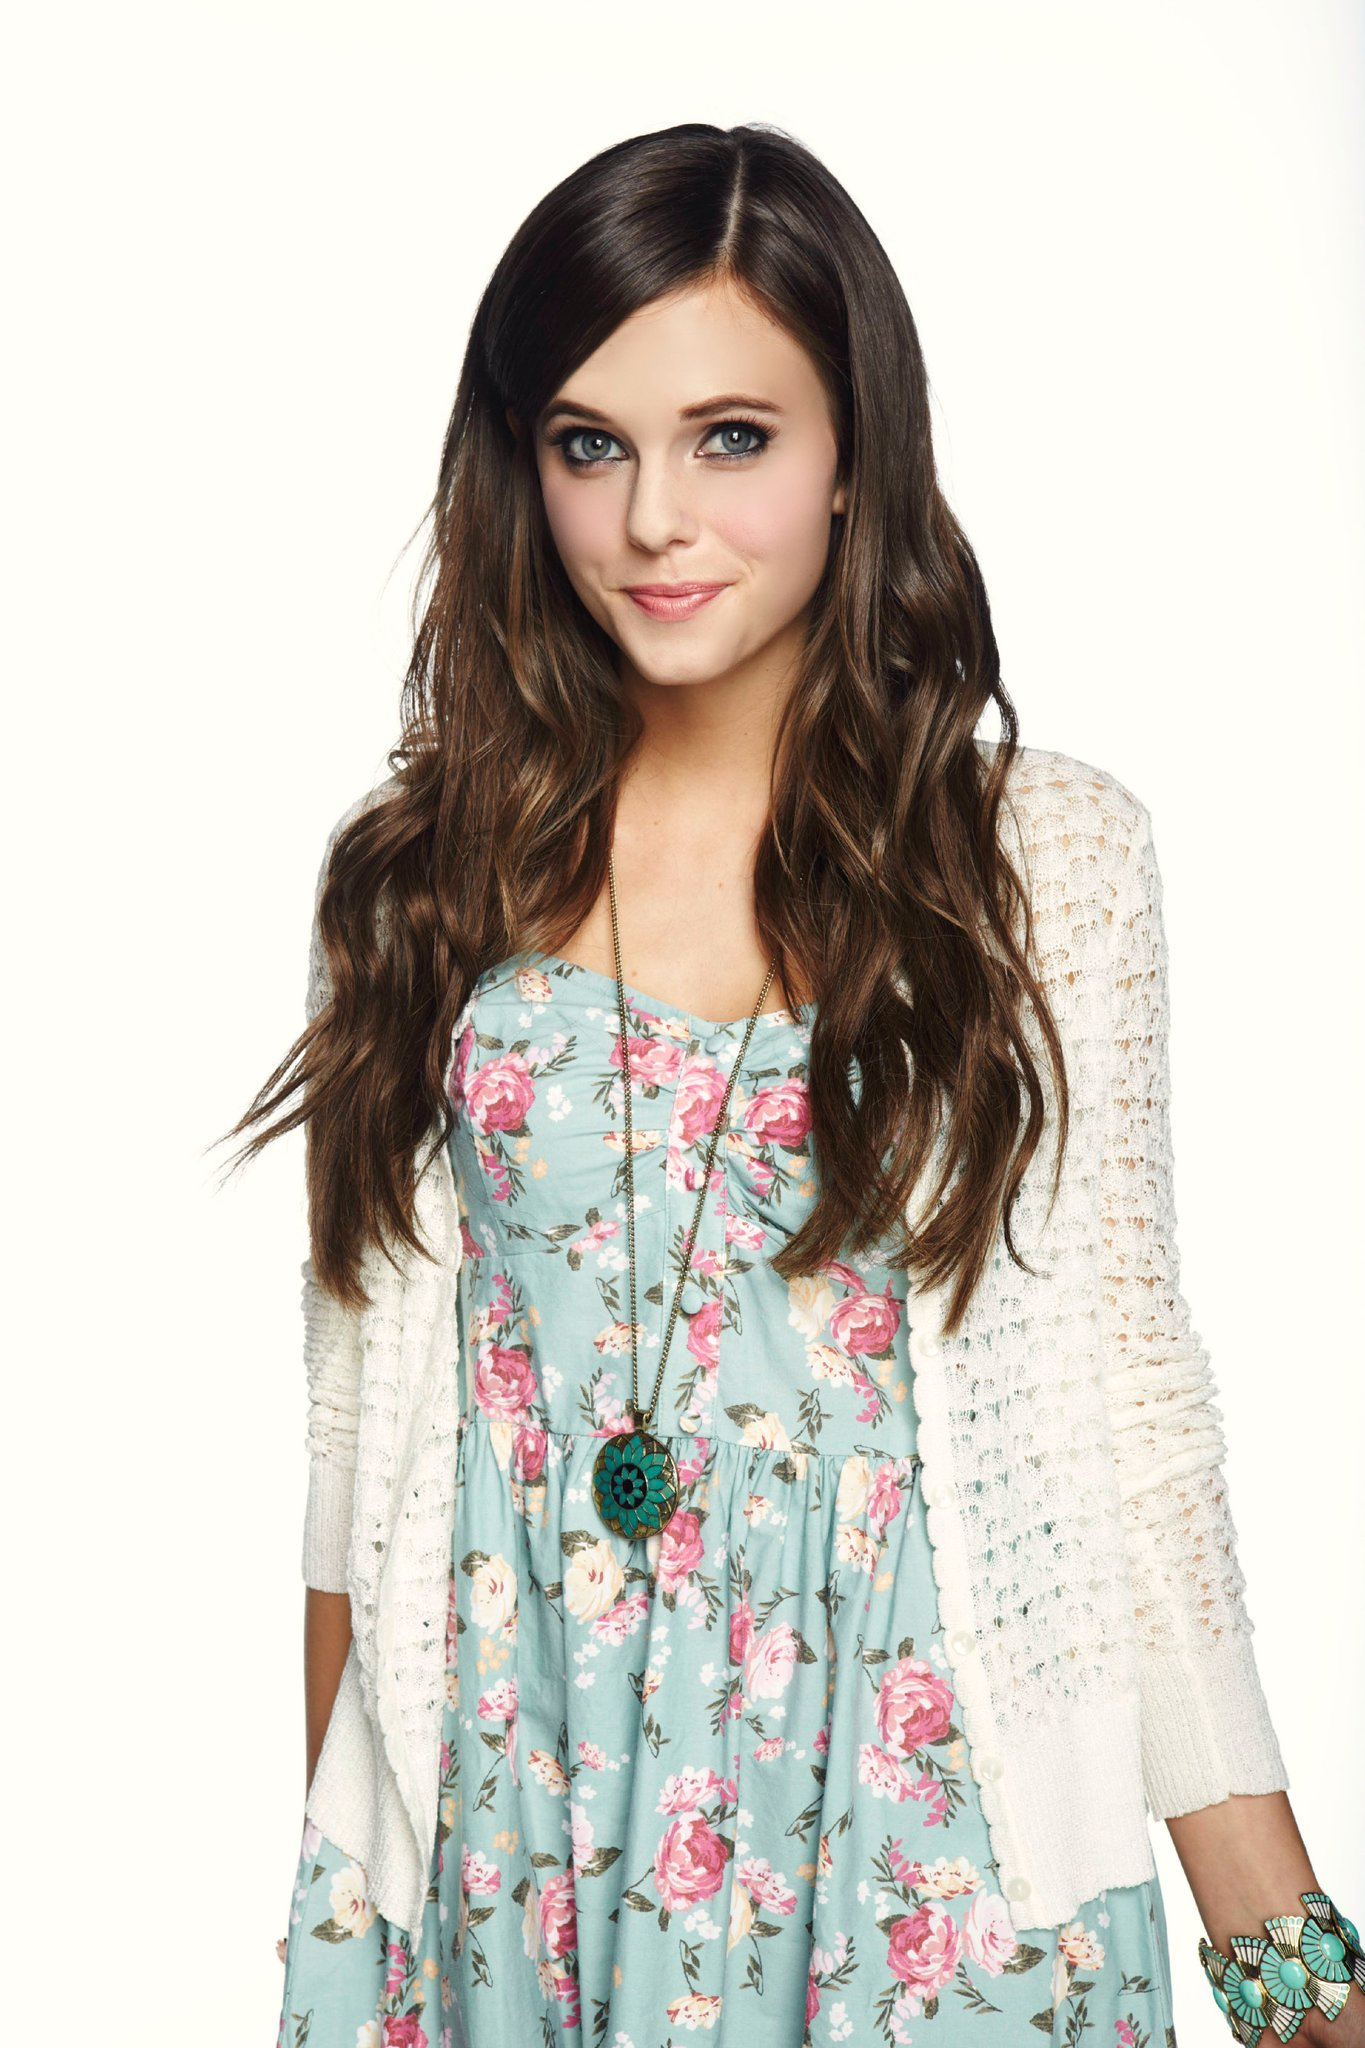 Photos Tiffany Alvord nudes (26 photo), Pussy, Fappening, Feet, panties 2015